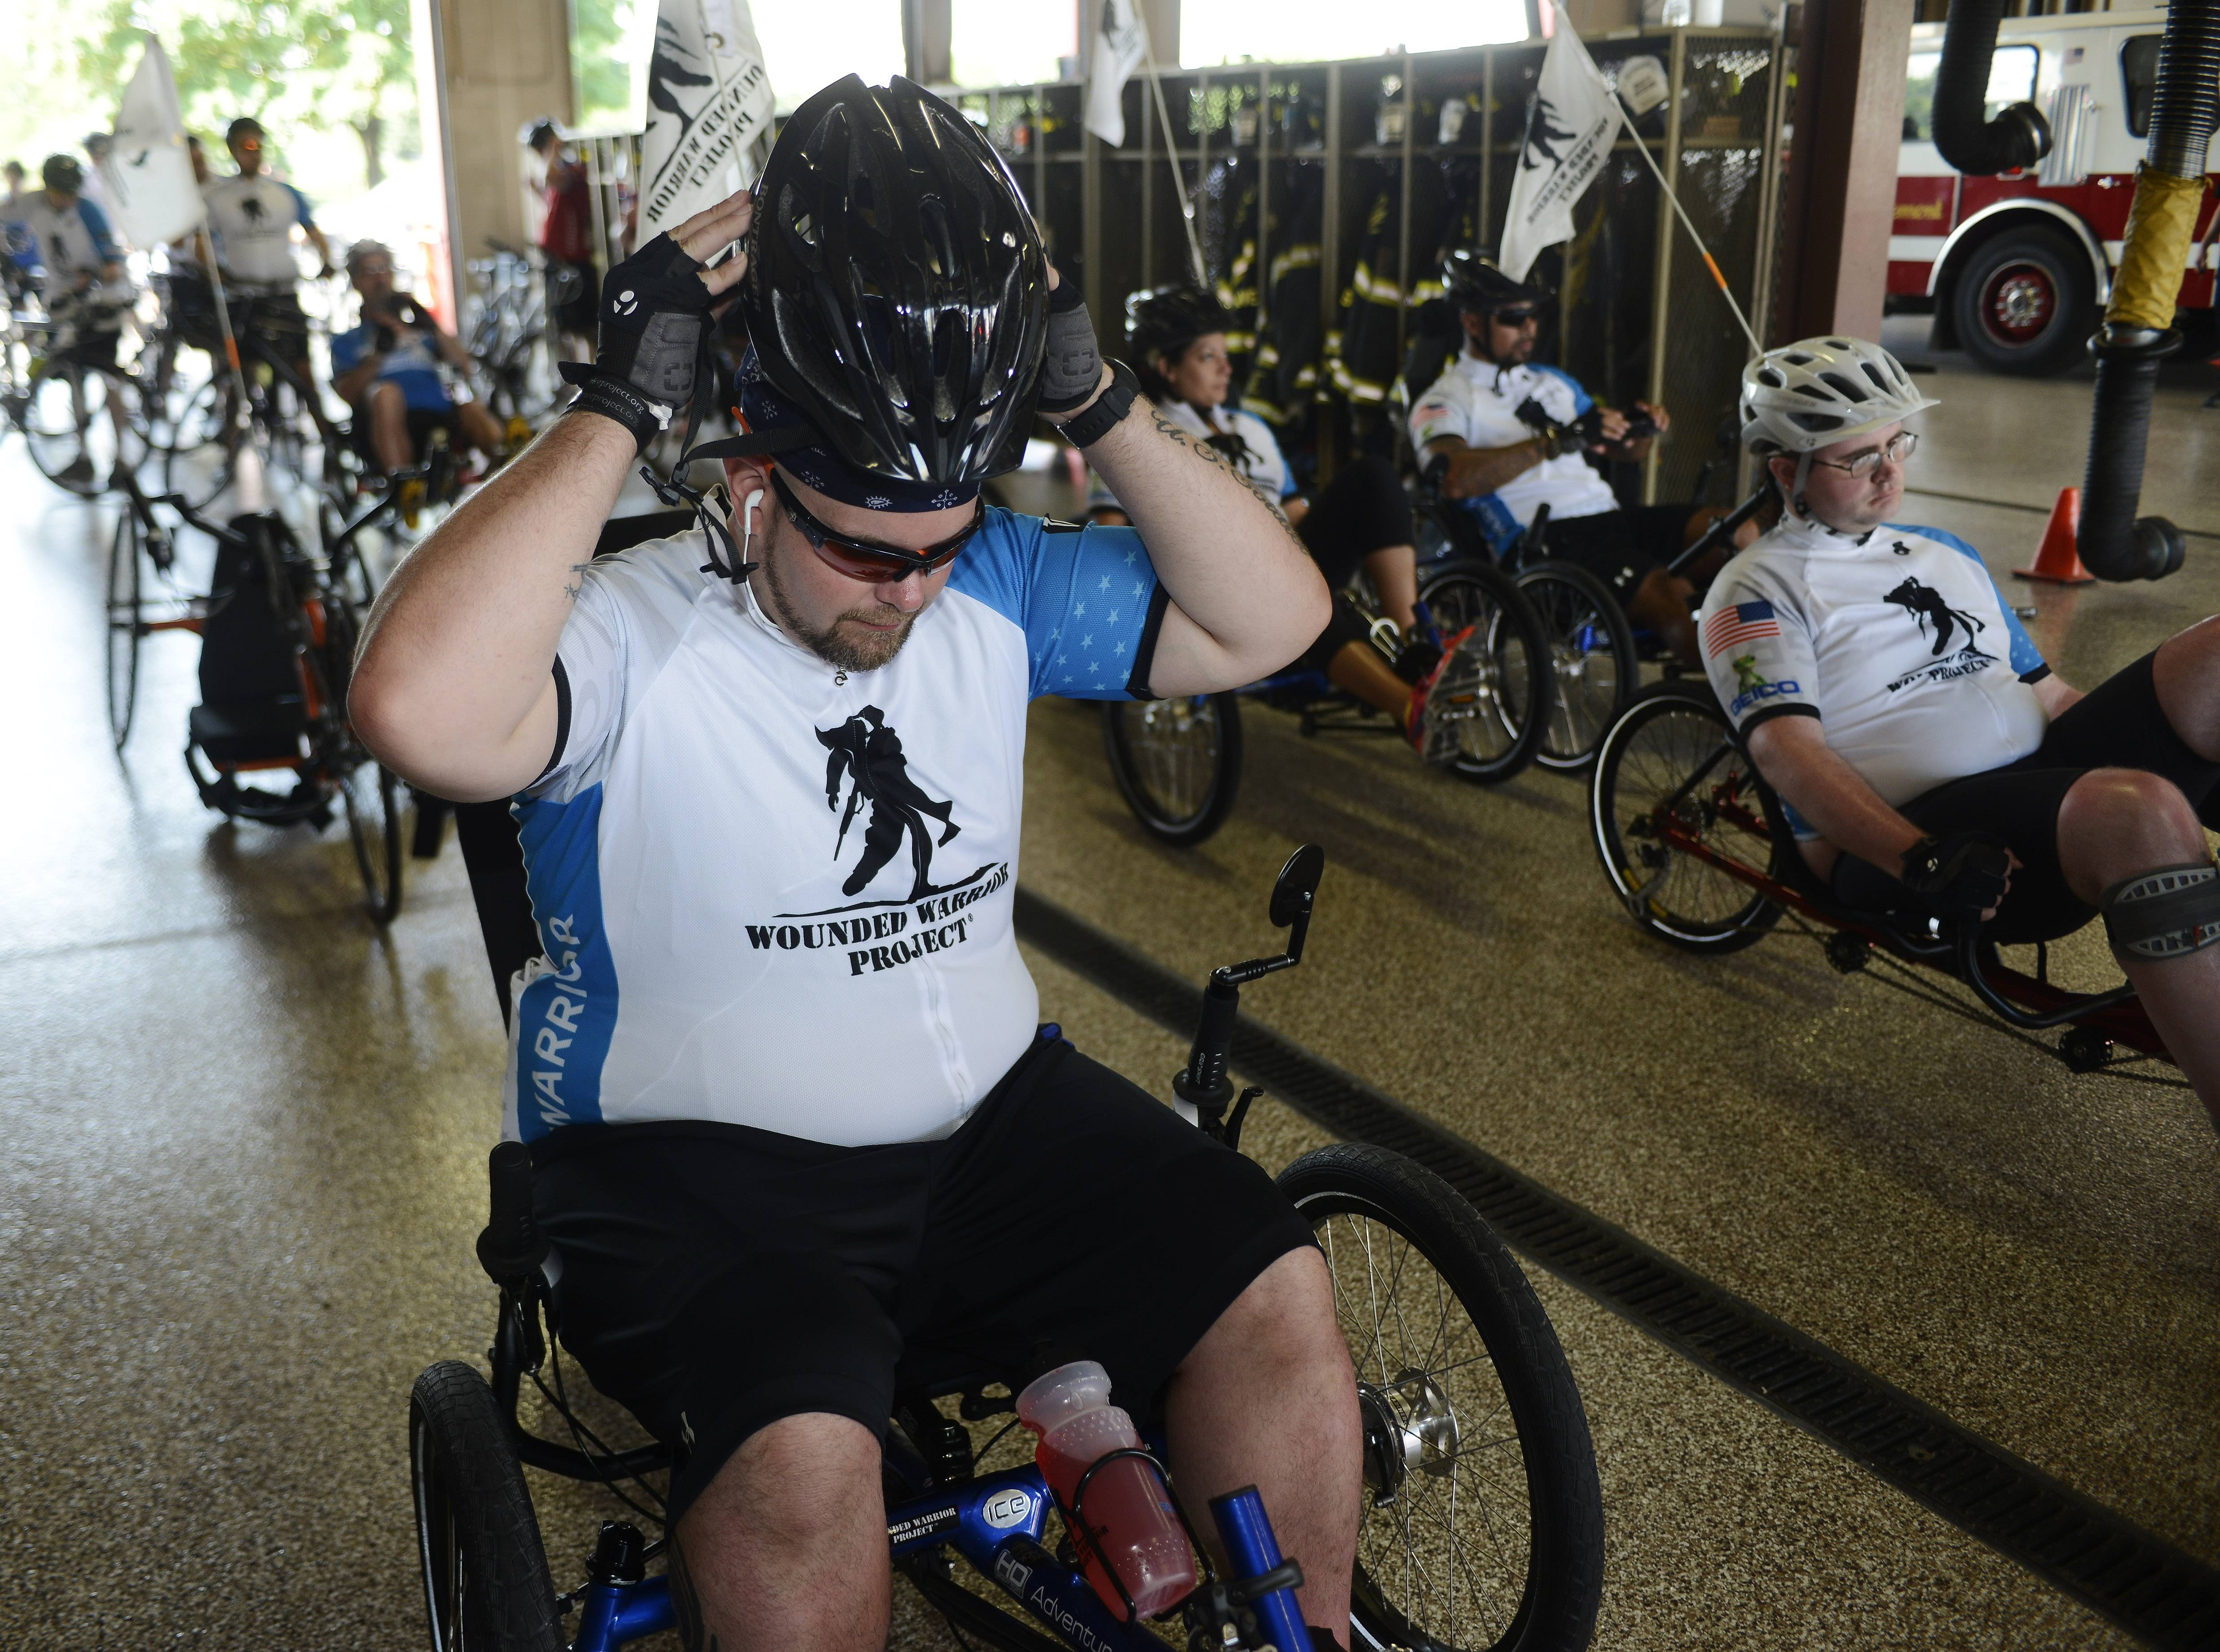 David Buckner of Rockford puts on his helmet prior to the start of the Wounded Warrior Project's Soldier Ride Friday at the Rosemont fire station on River Road.